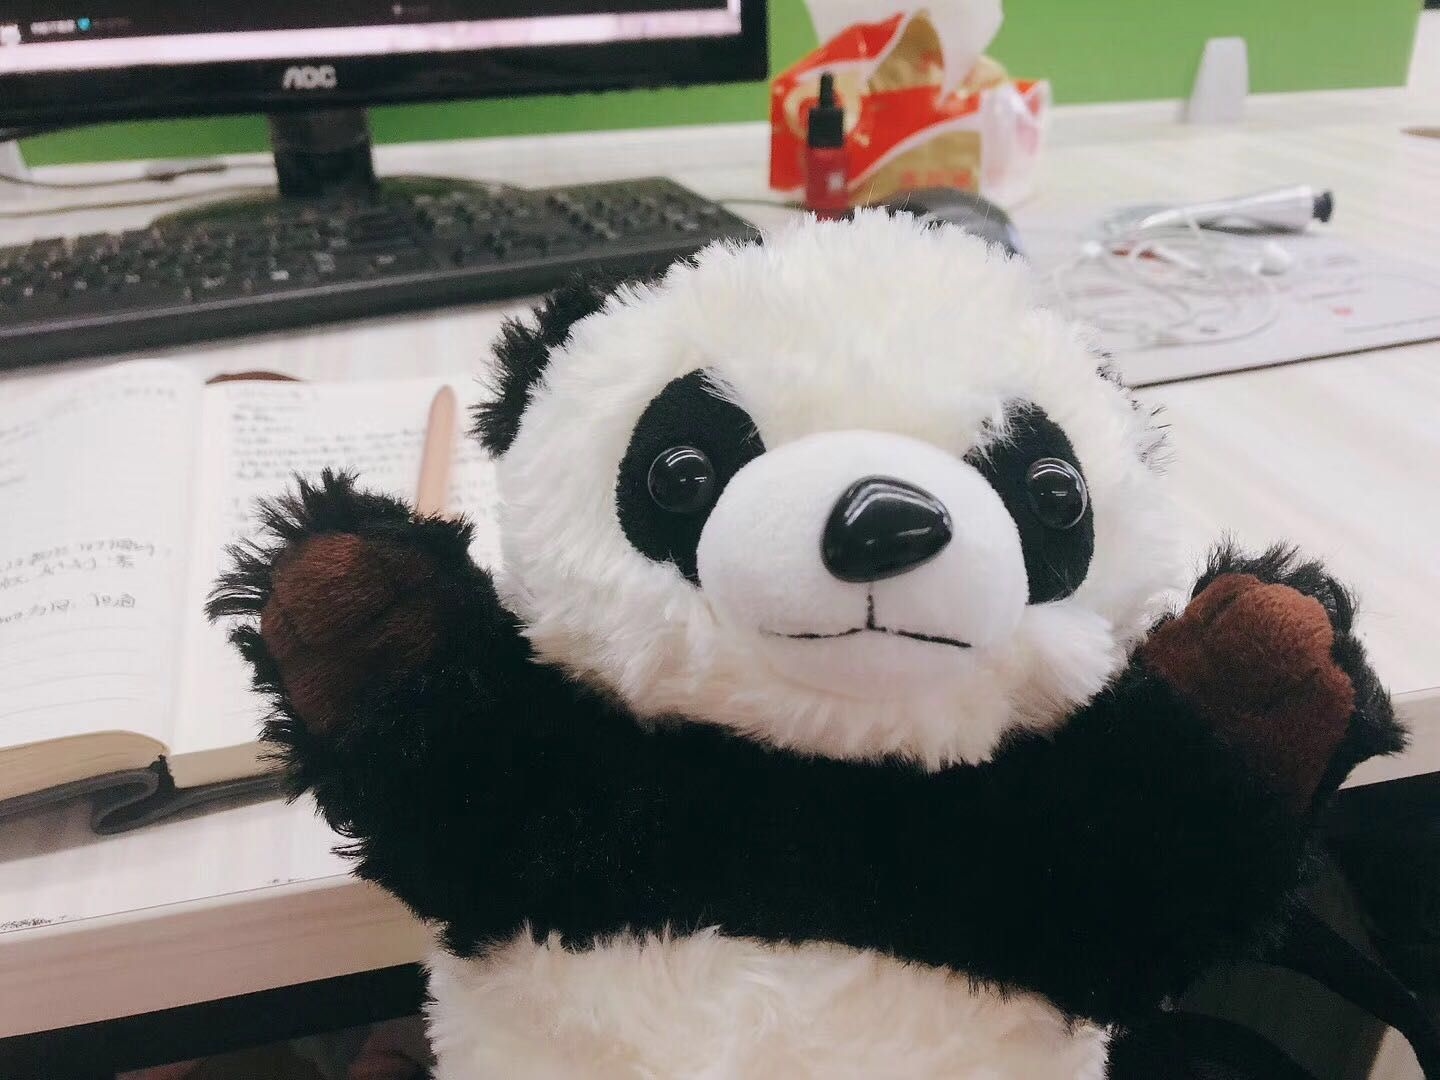 I heard that people all over the world love pandas. Is